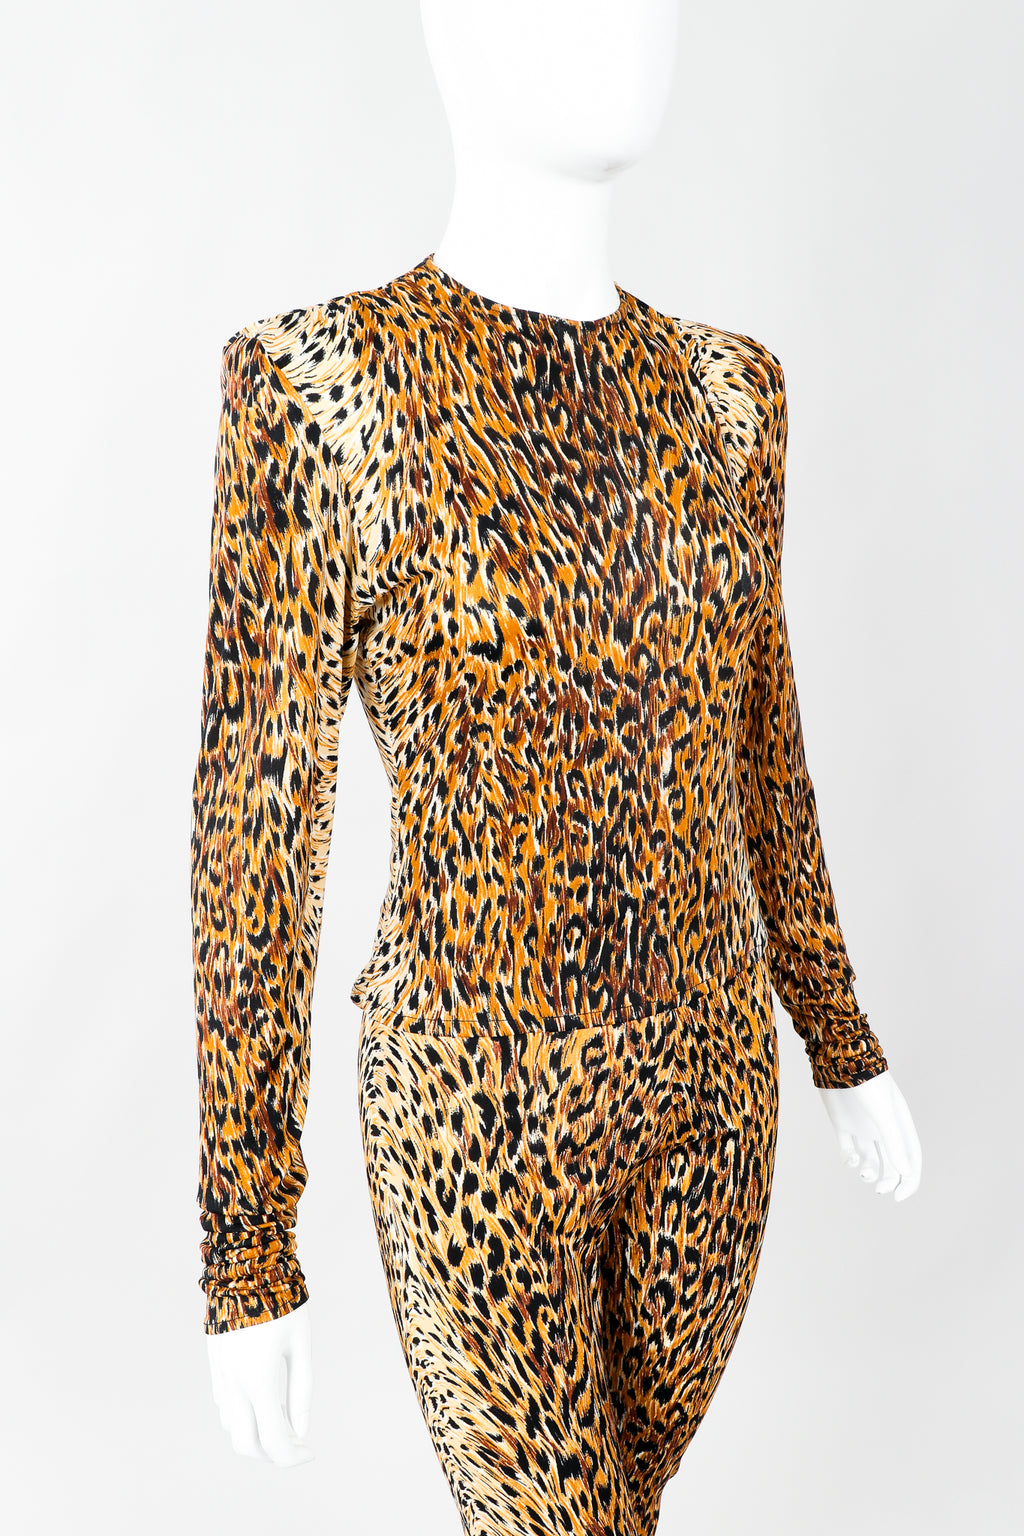 Vintage Norma Kamali Slinky Animal Print Top & Pant Leisure Set on Mannequin cropped, at Recess